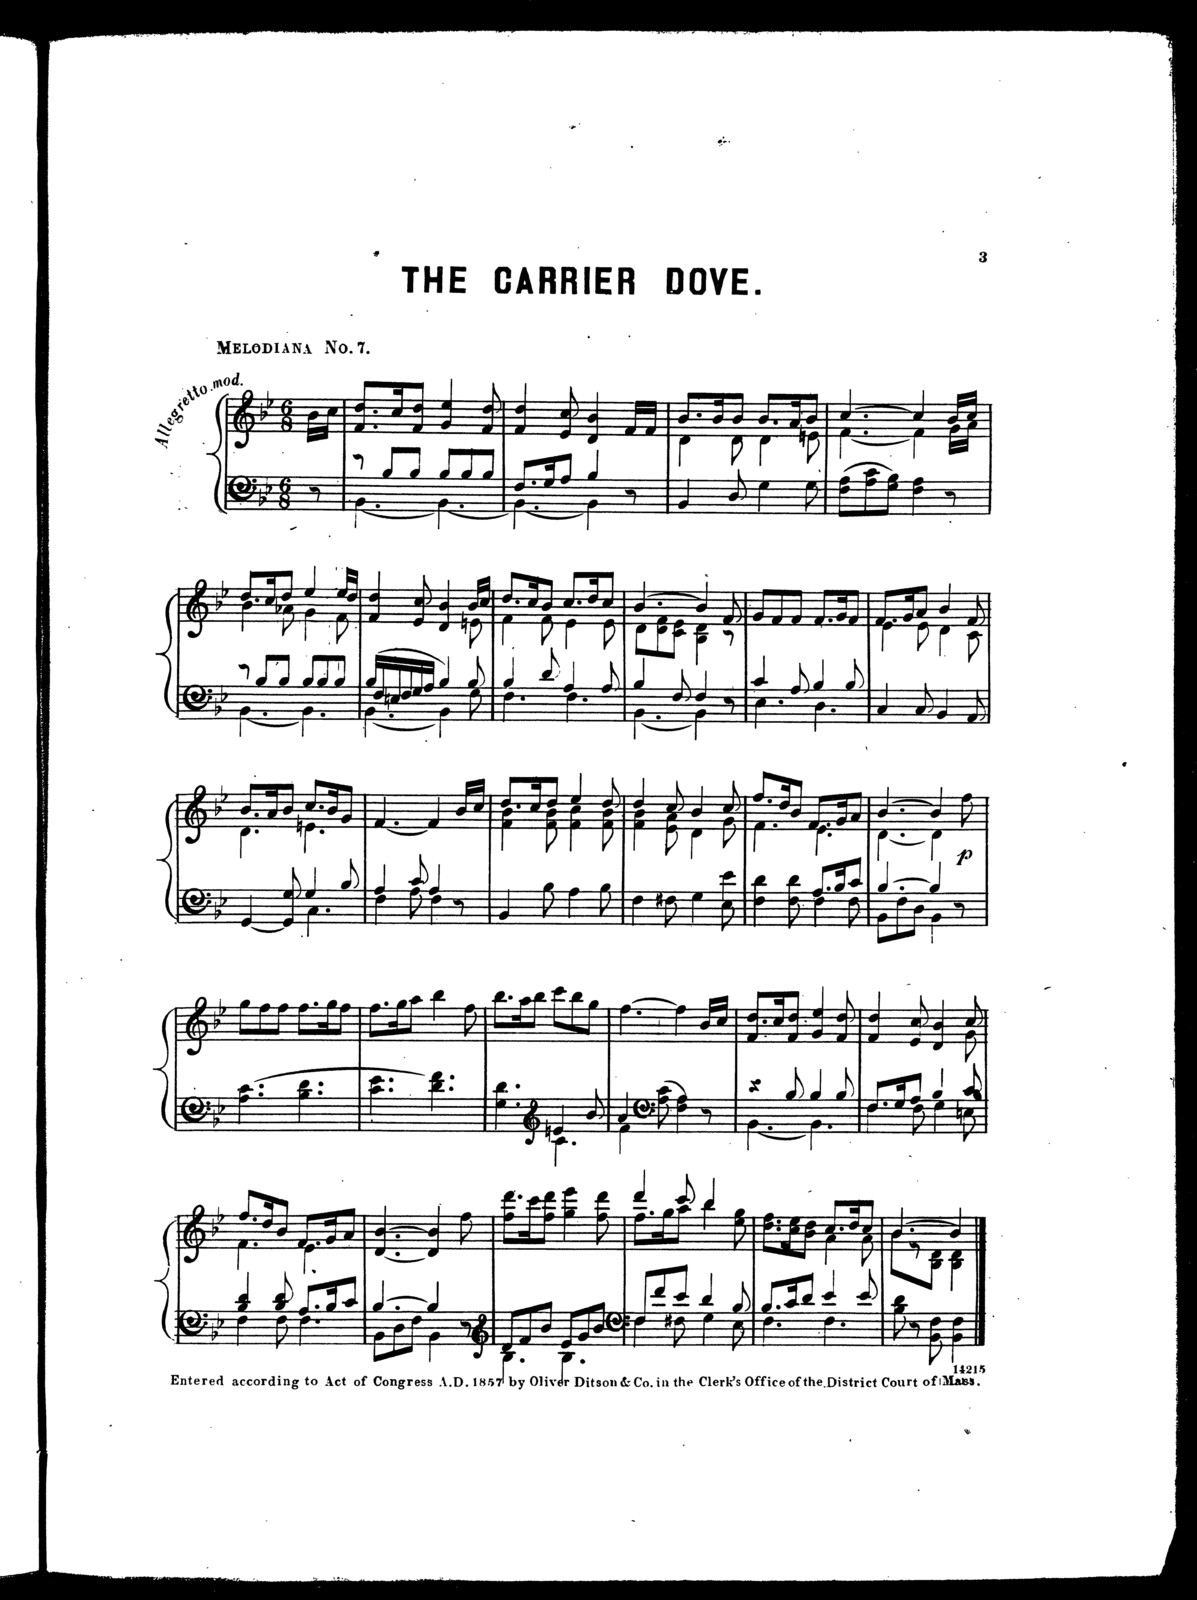 The  carrier dove -- Araby's daughter -- Ricci's waltz